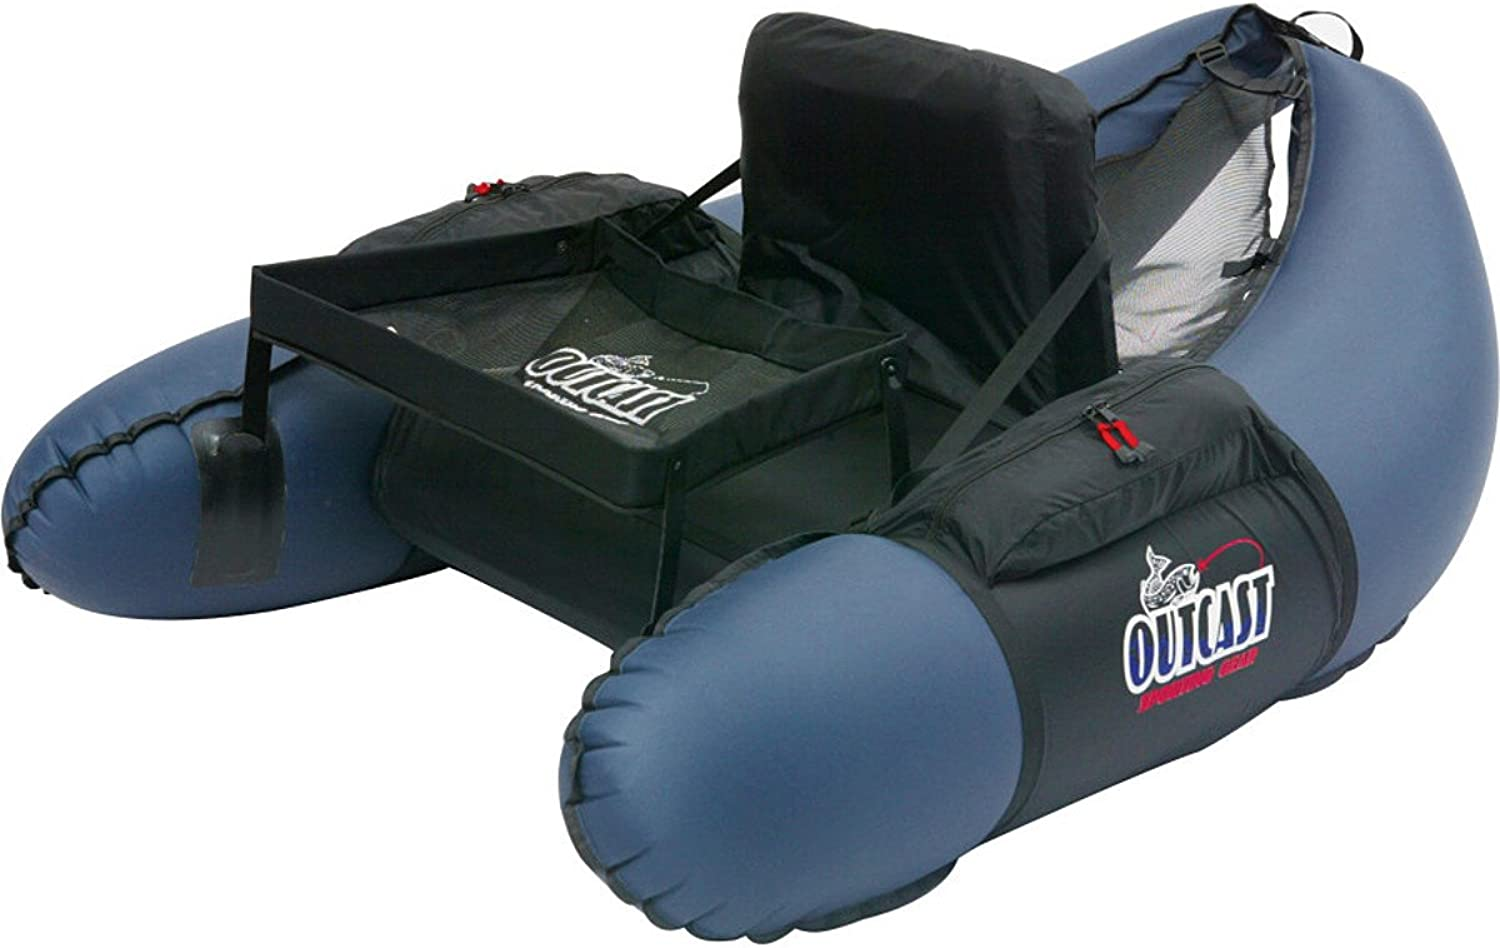 Outcast Trinity Float Tube  Navy